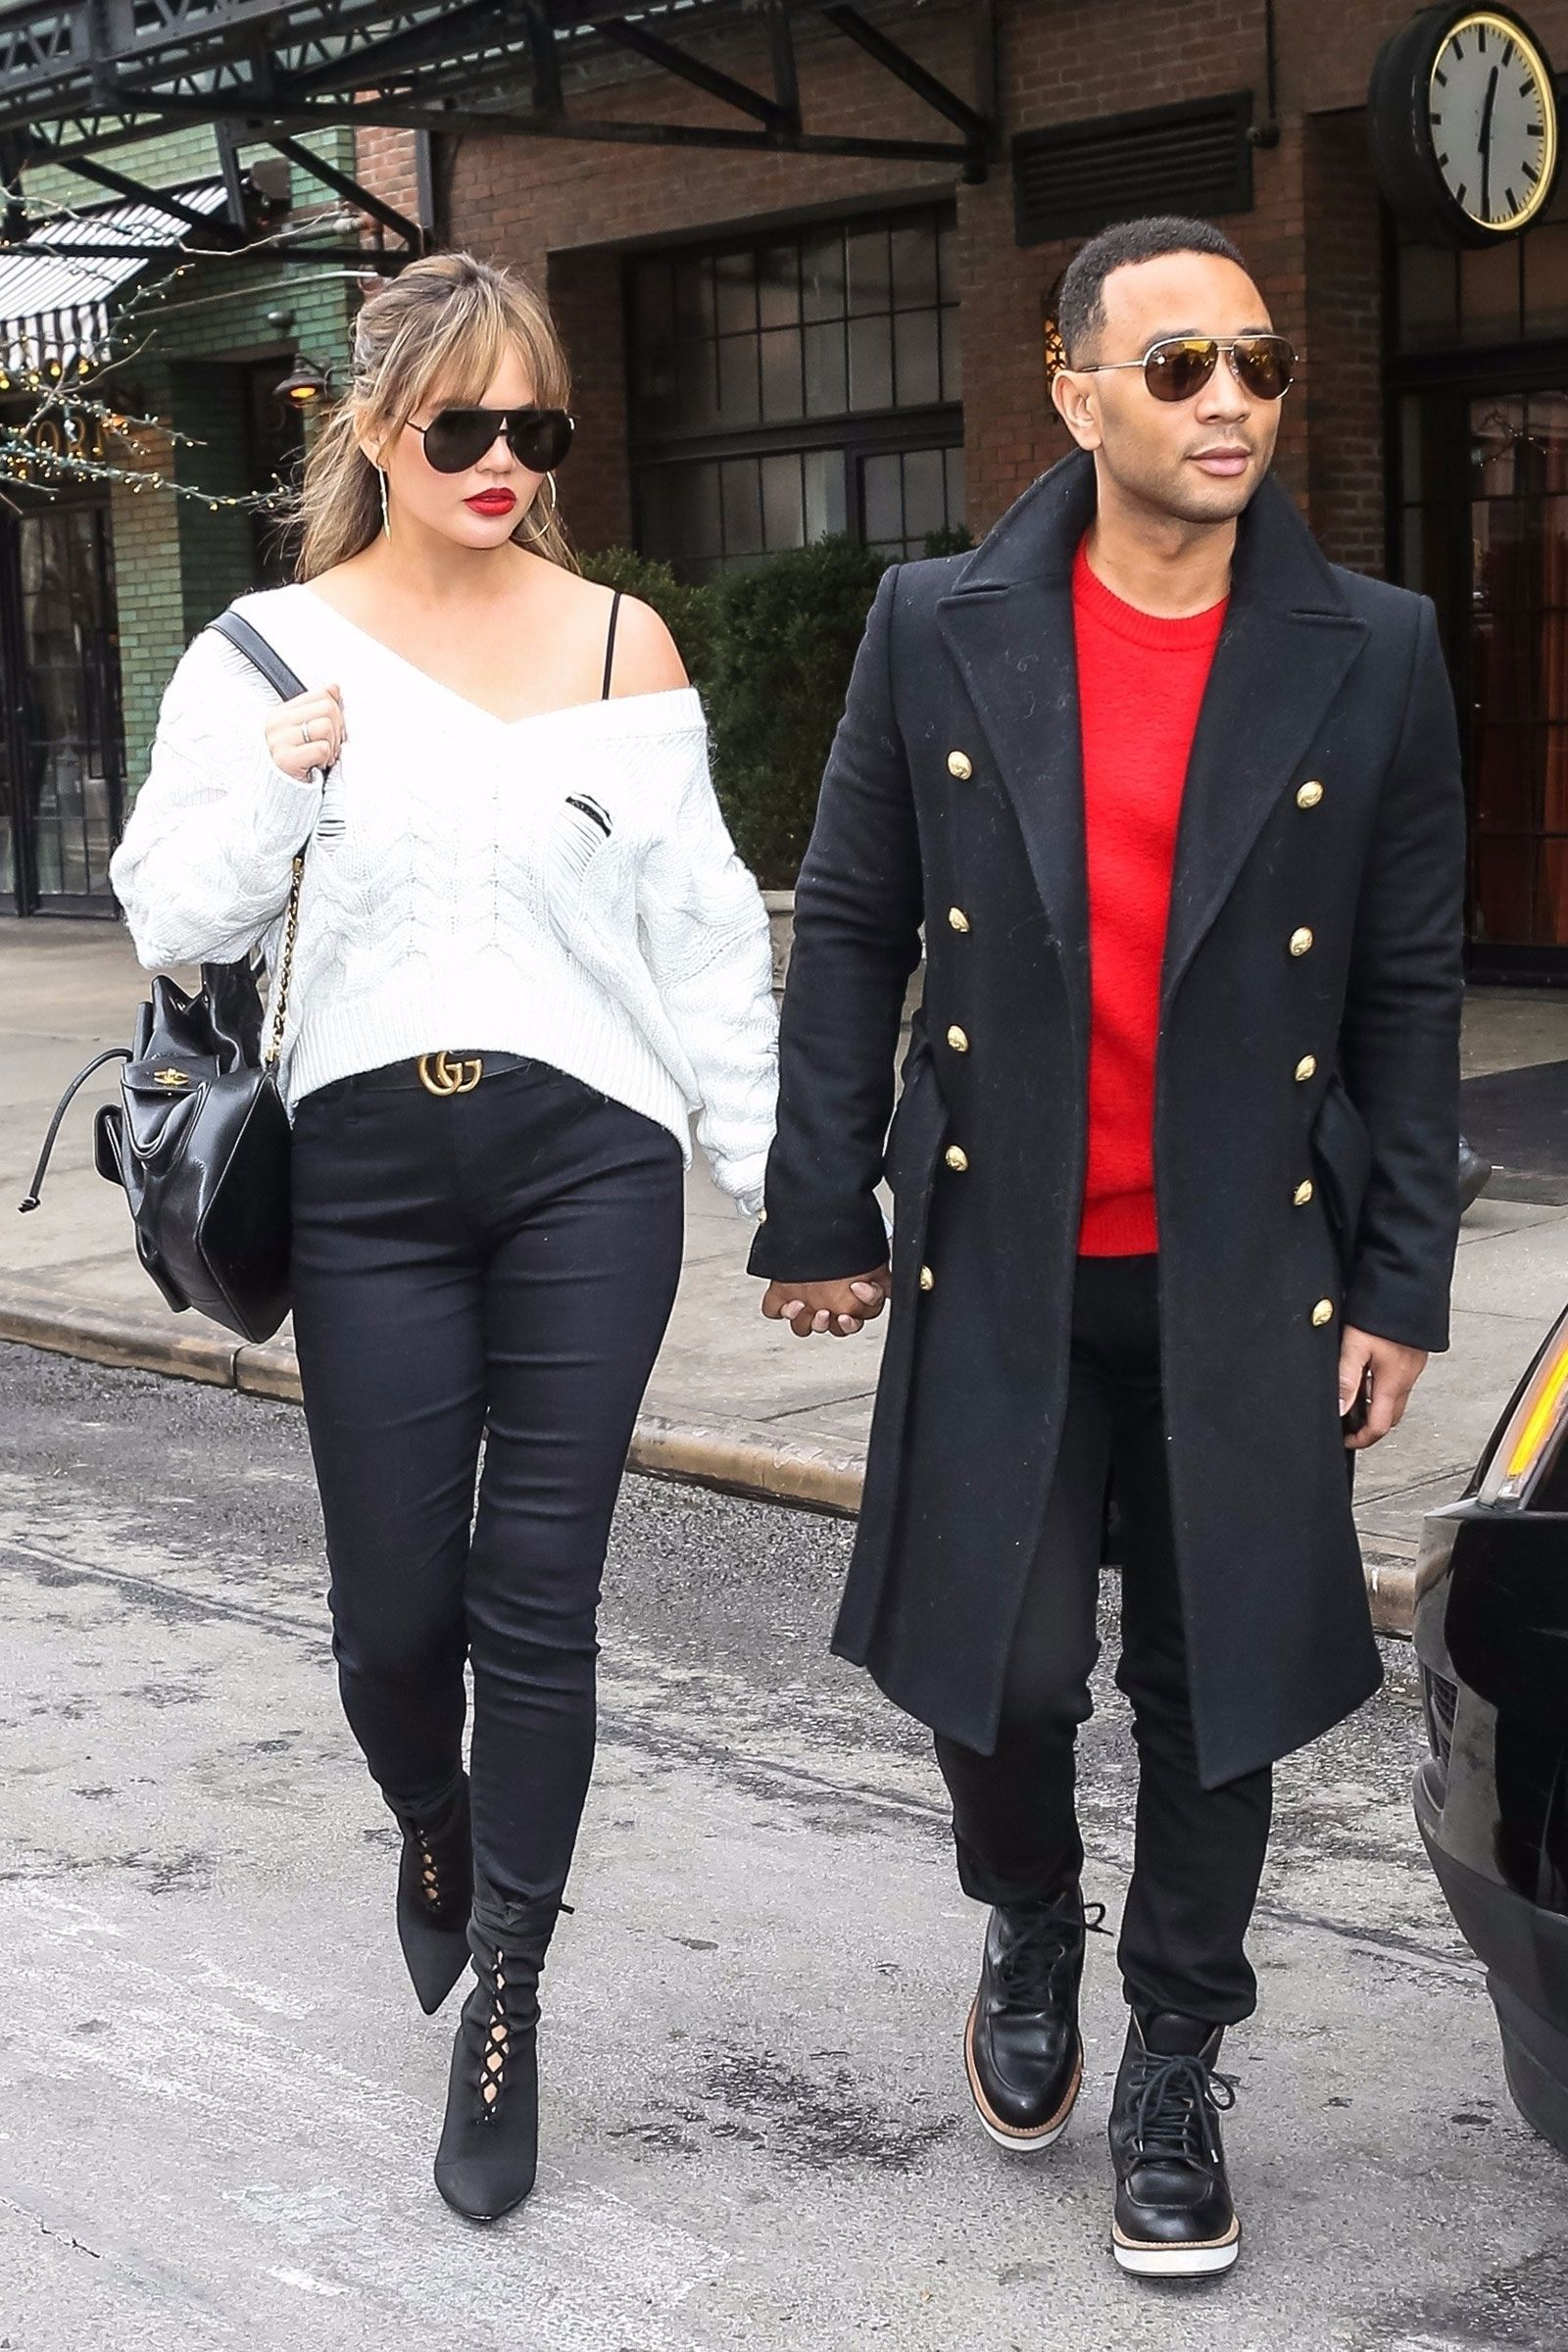 fffba04ba4 Chrissy Teigen s White Sweater and Lace-Up Booties